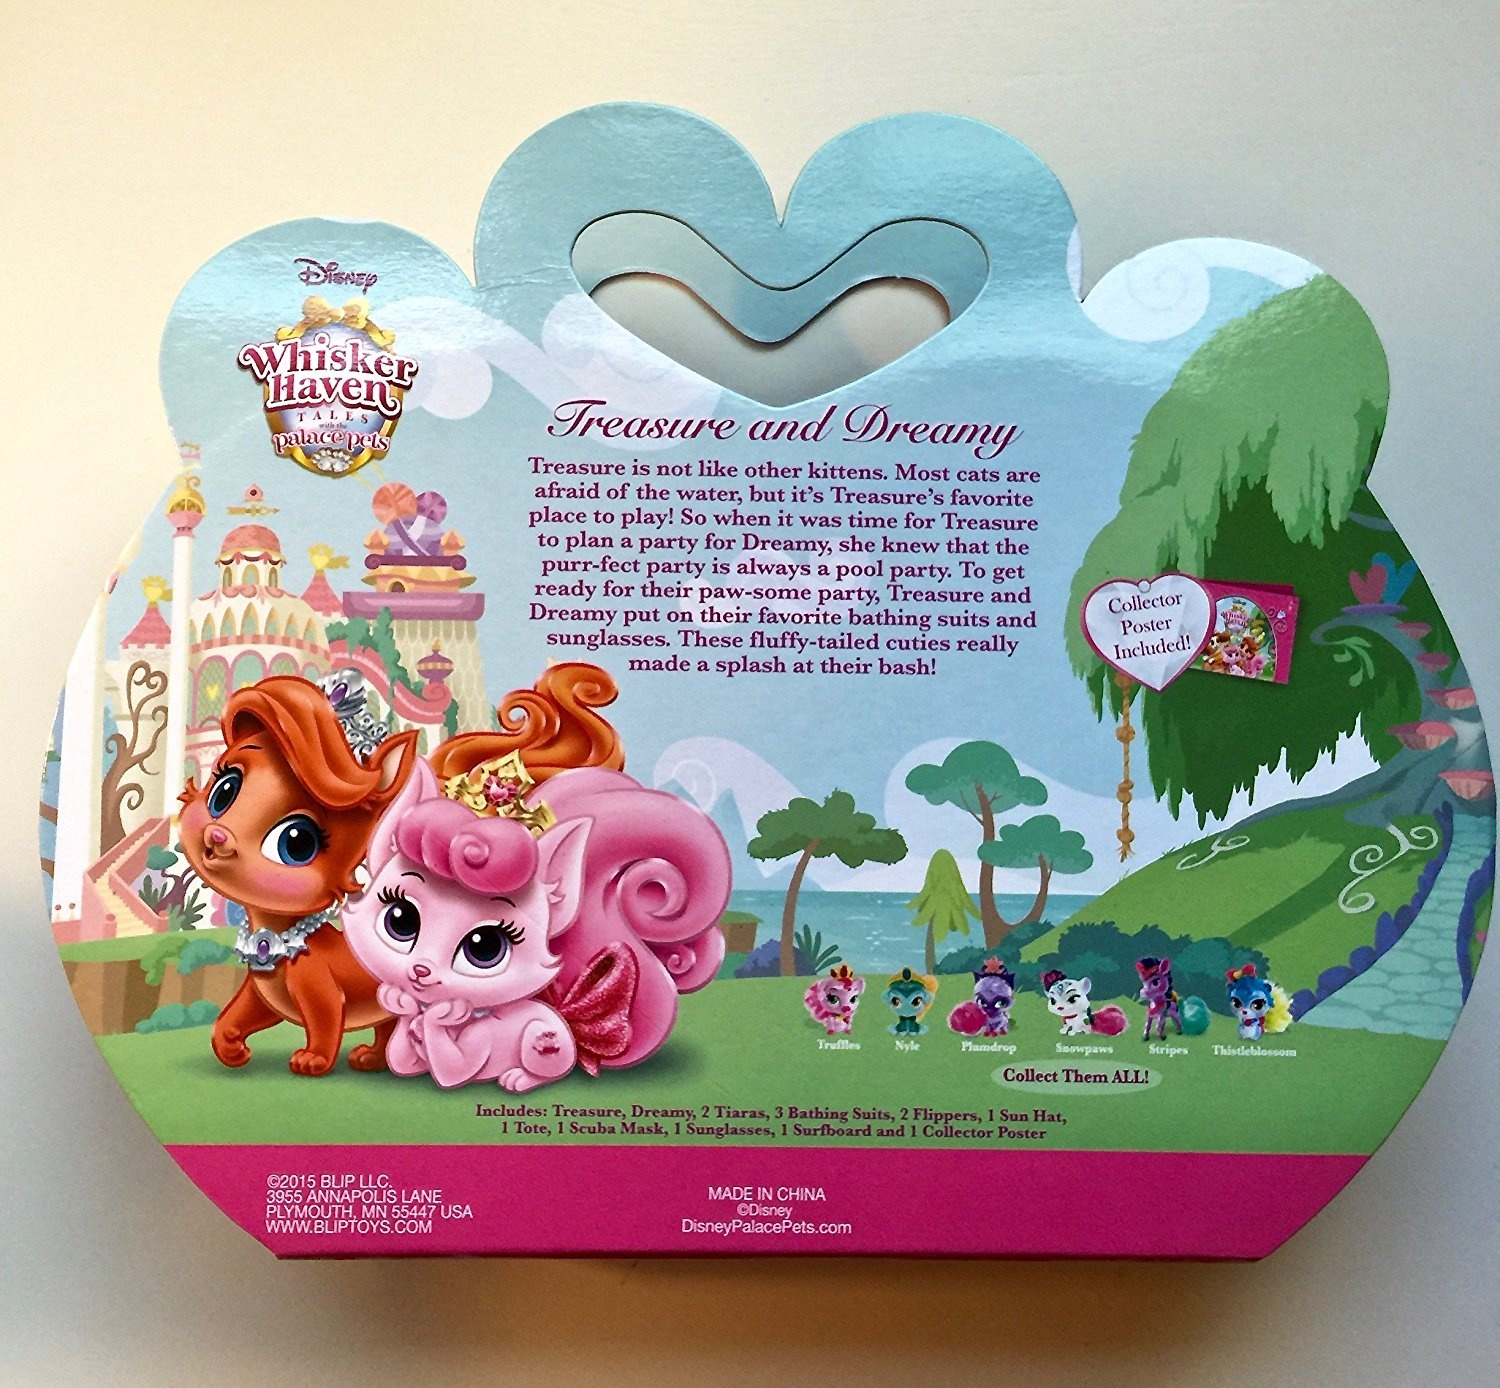 Disney Princess Palace Pets Whisker Haven Tales Treasure And Dreamy S Pool Party Playset By Blip Toys By Disney Shop Online For Toys In Indonesia